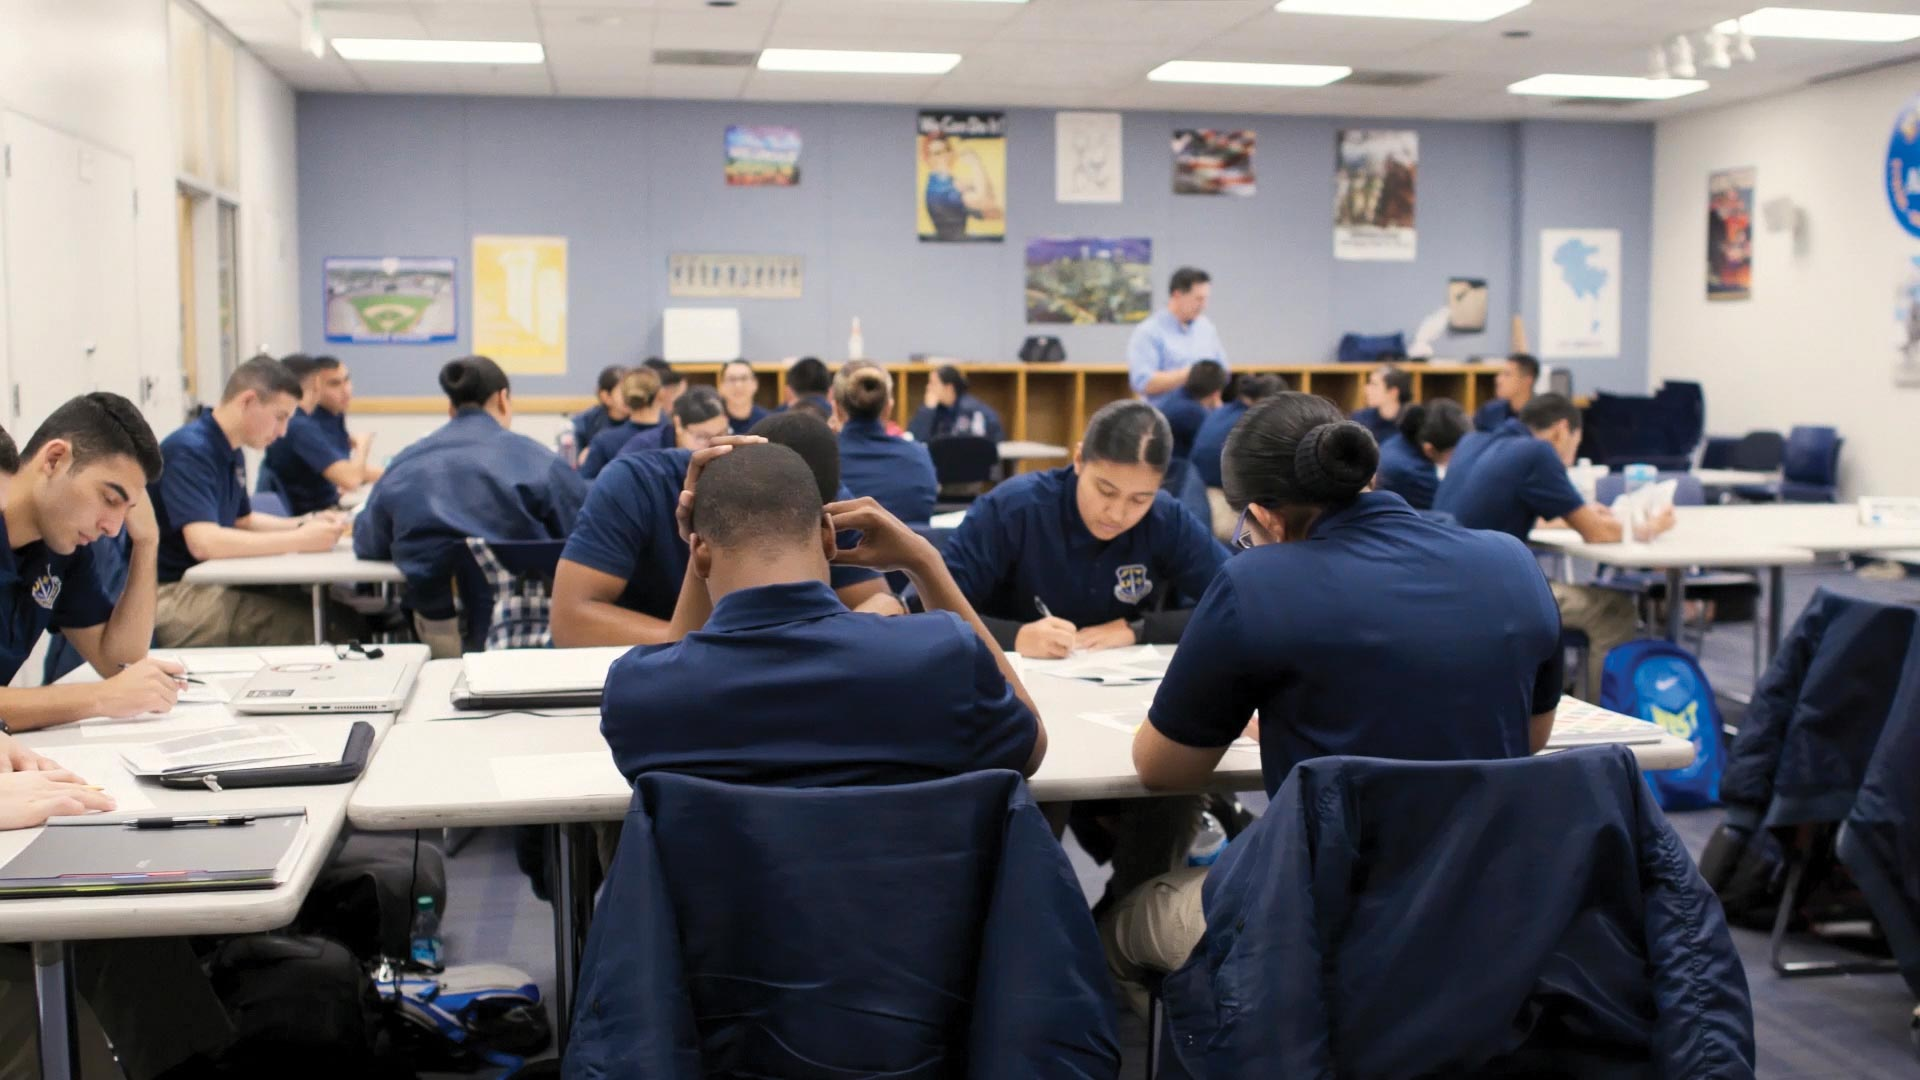 Young police trainees in Los Angeles, California, learn through a program created by the city's innovation team to keep them engaged in the recruitment process until they can become sworn officers at age 21.